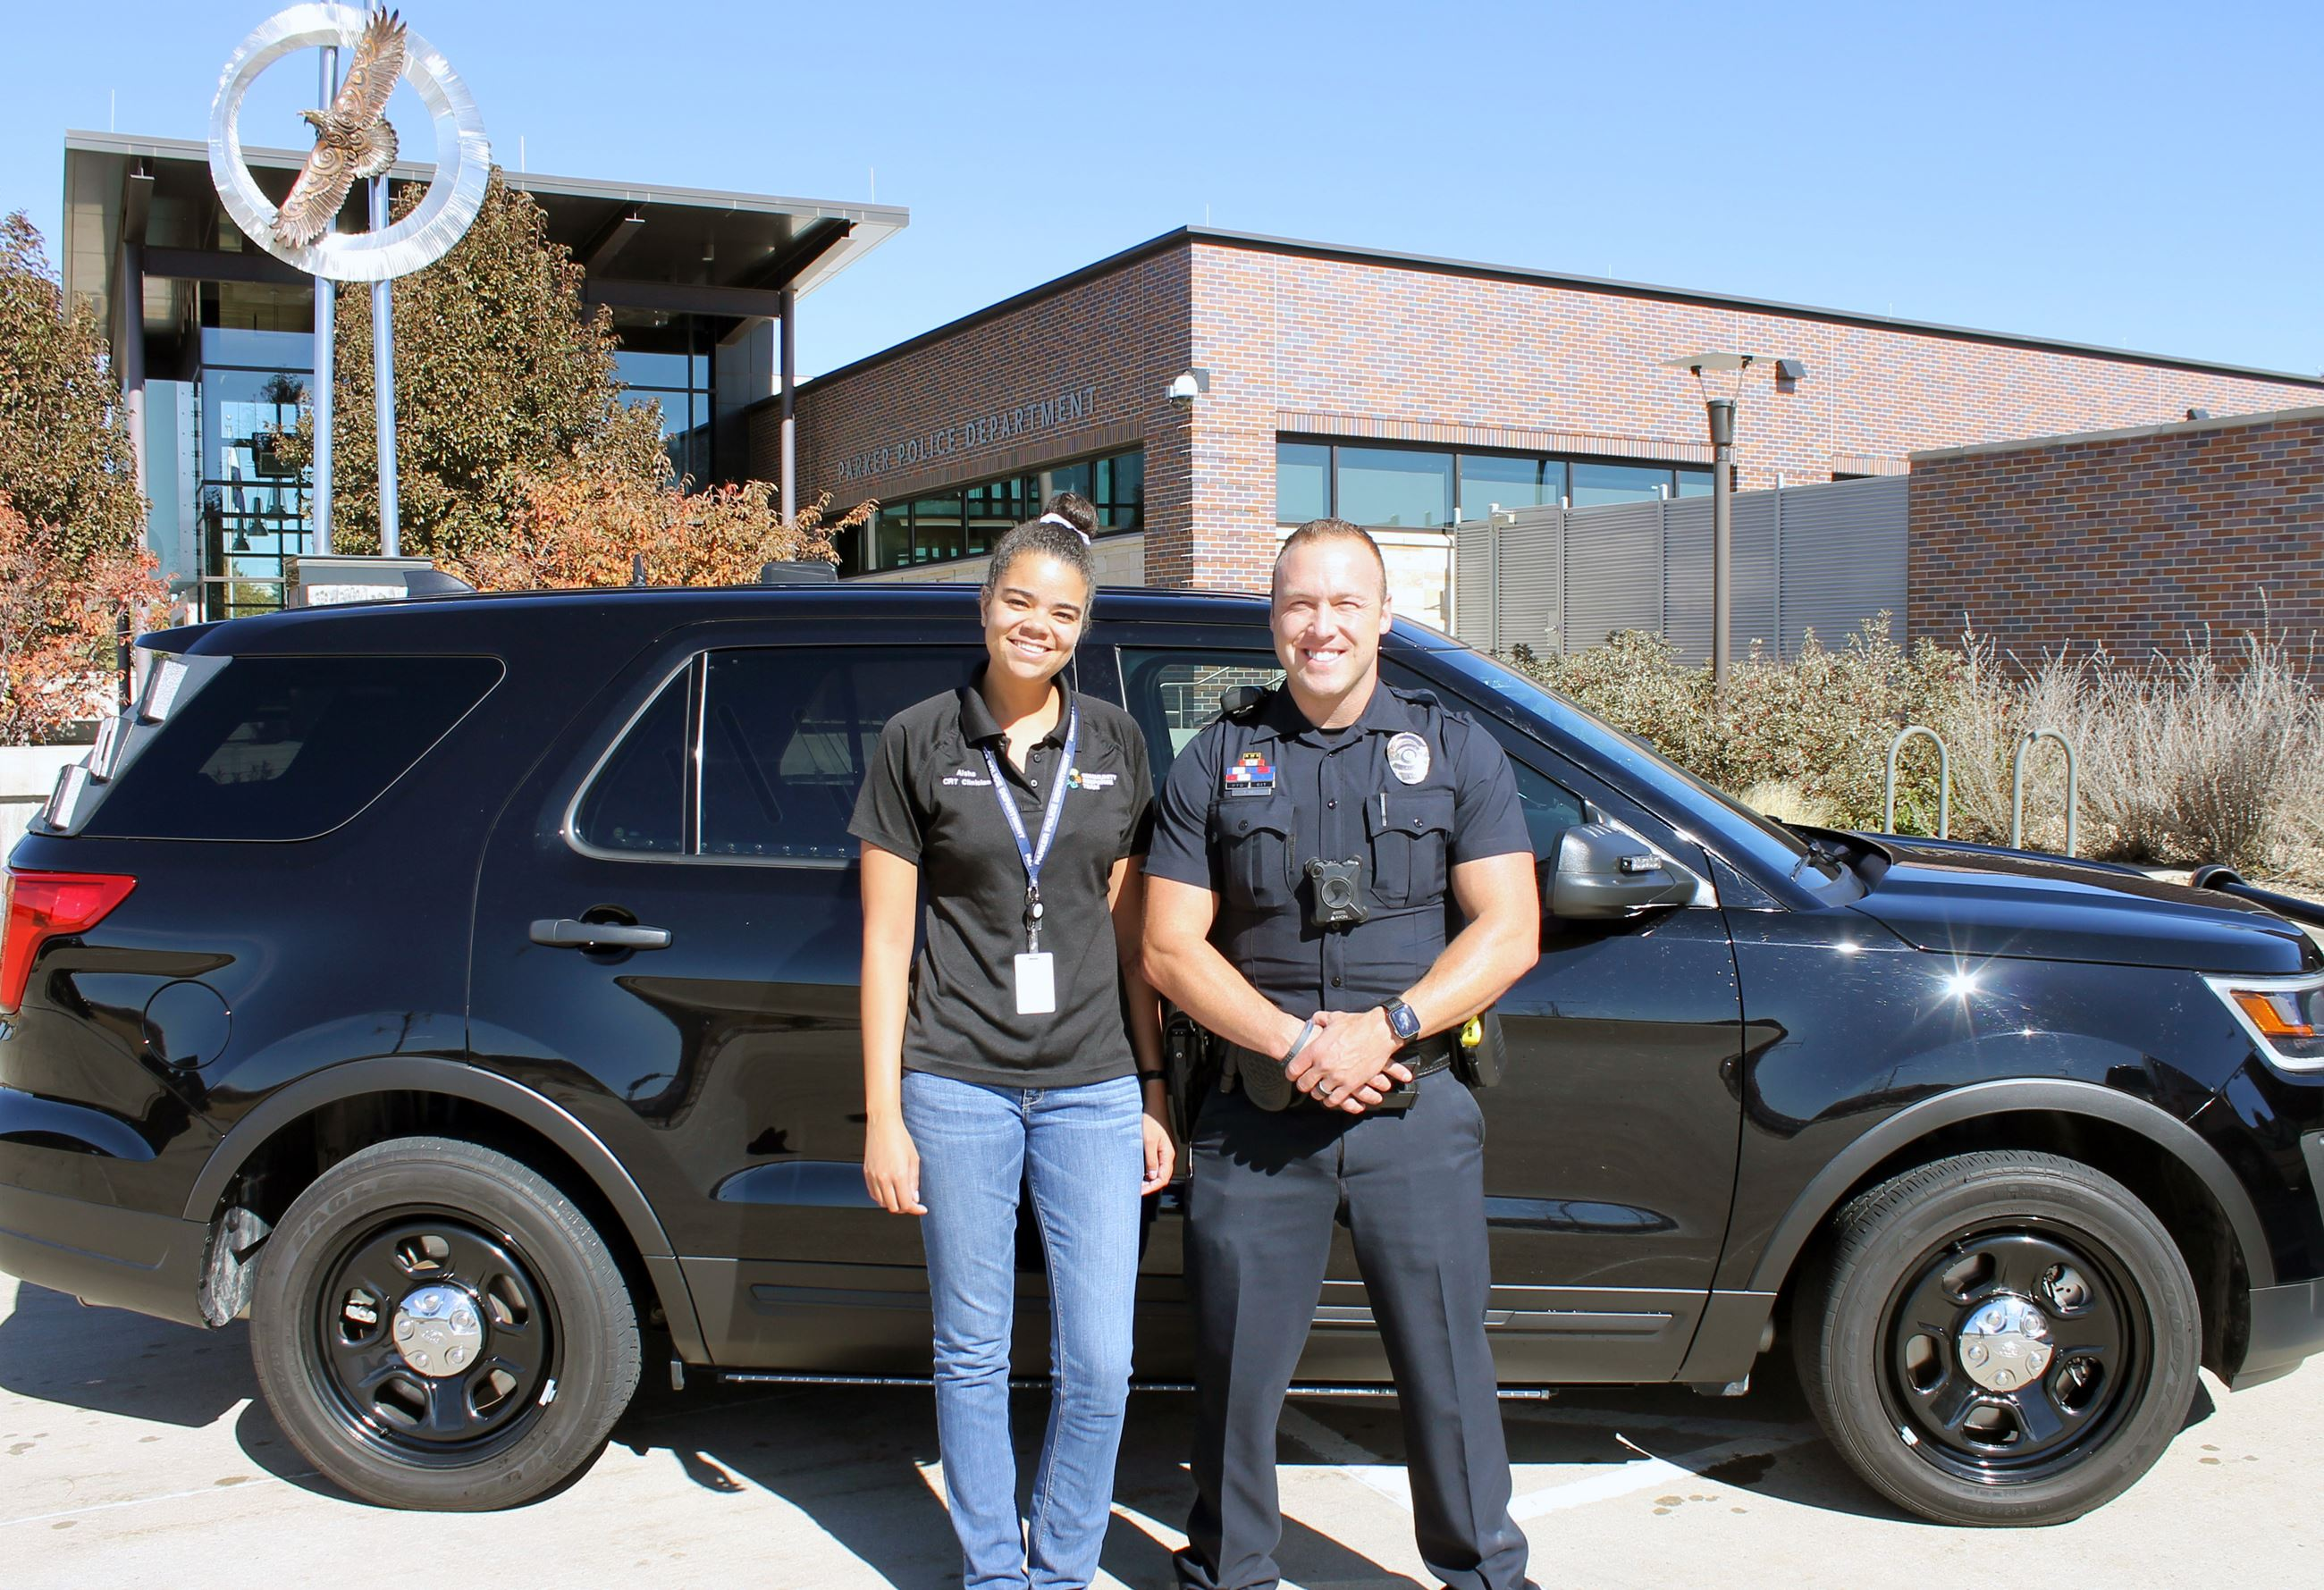 Officer Biles and Clinician Henry standing in front of their patrol car